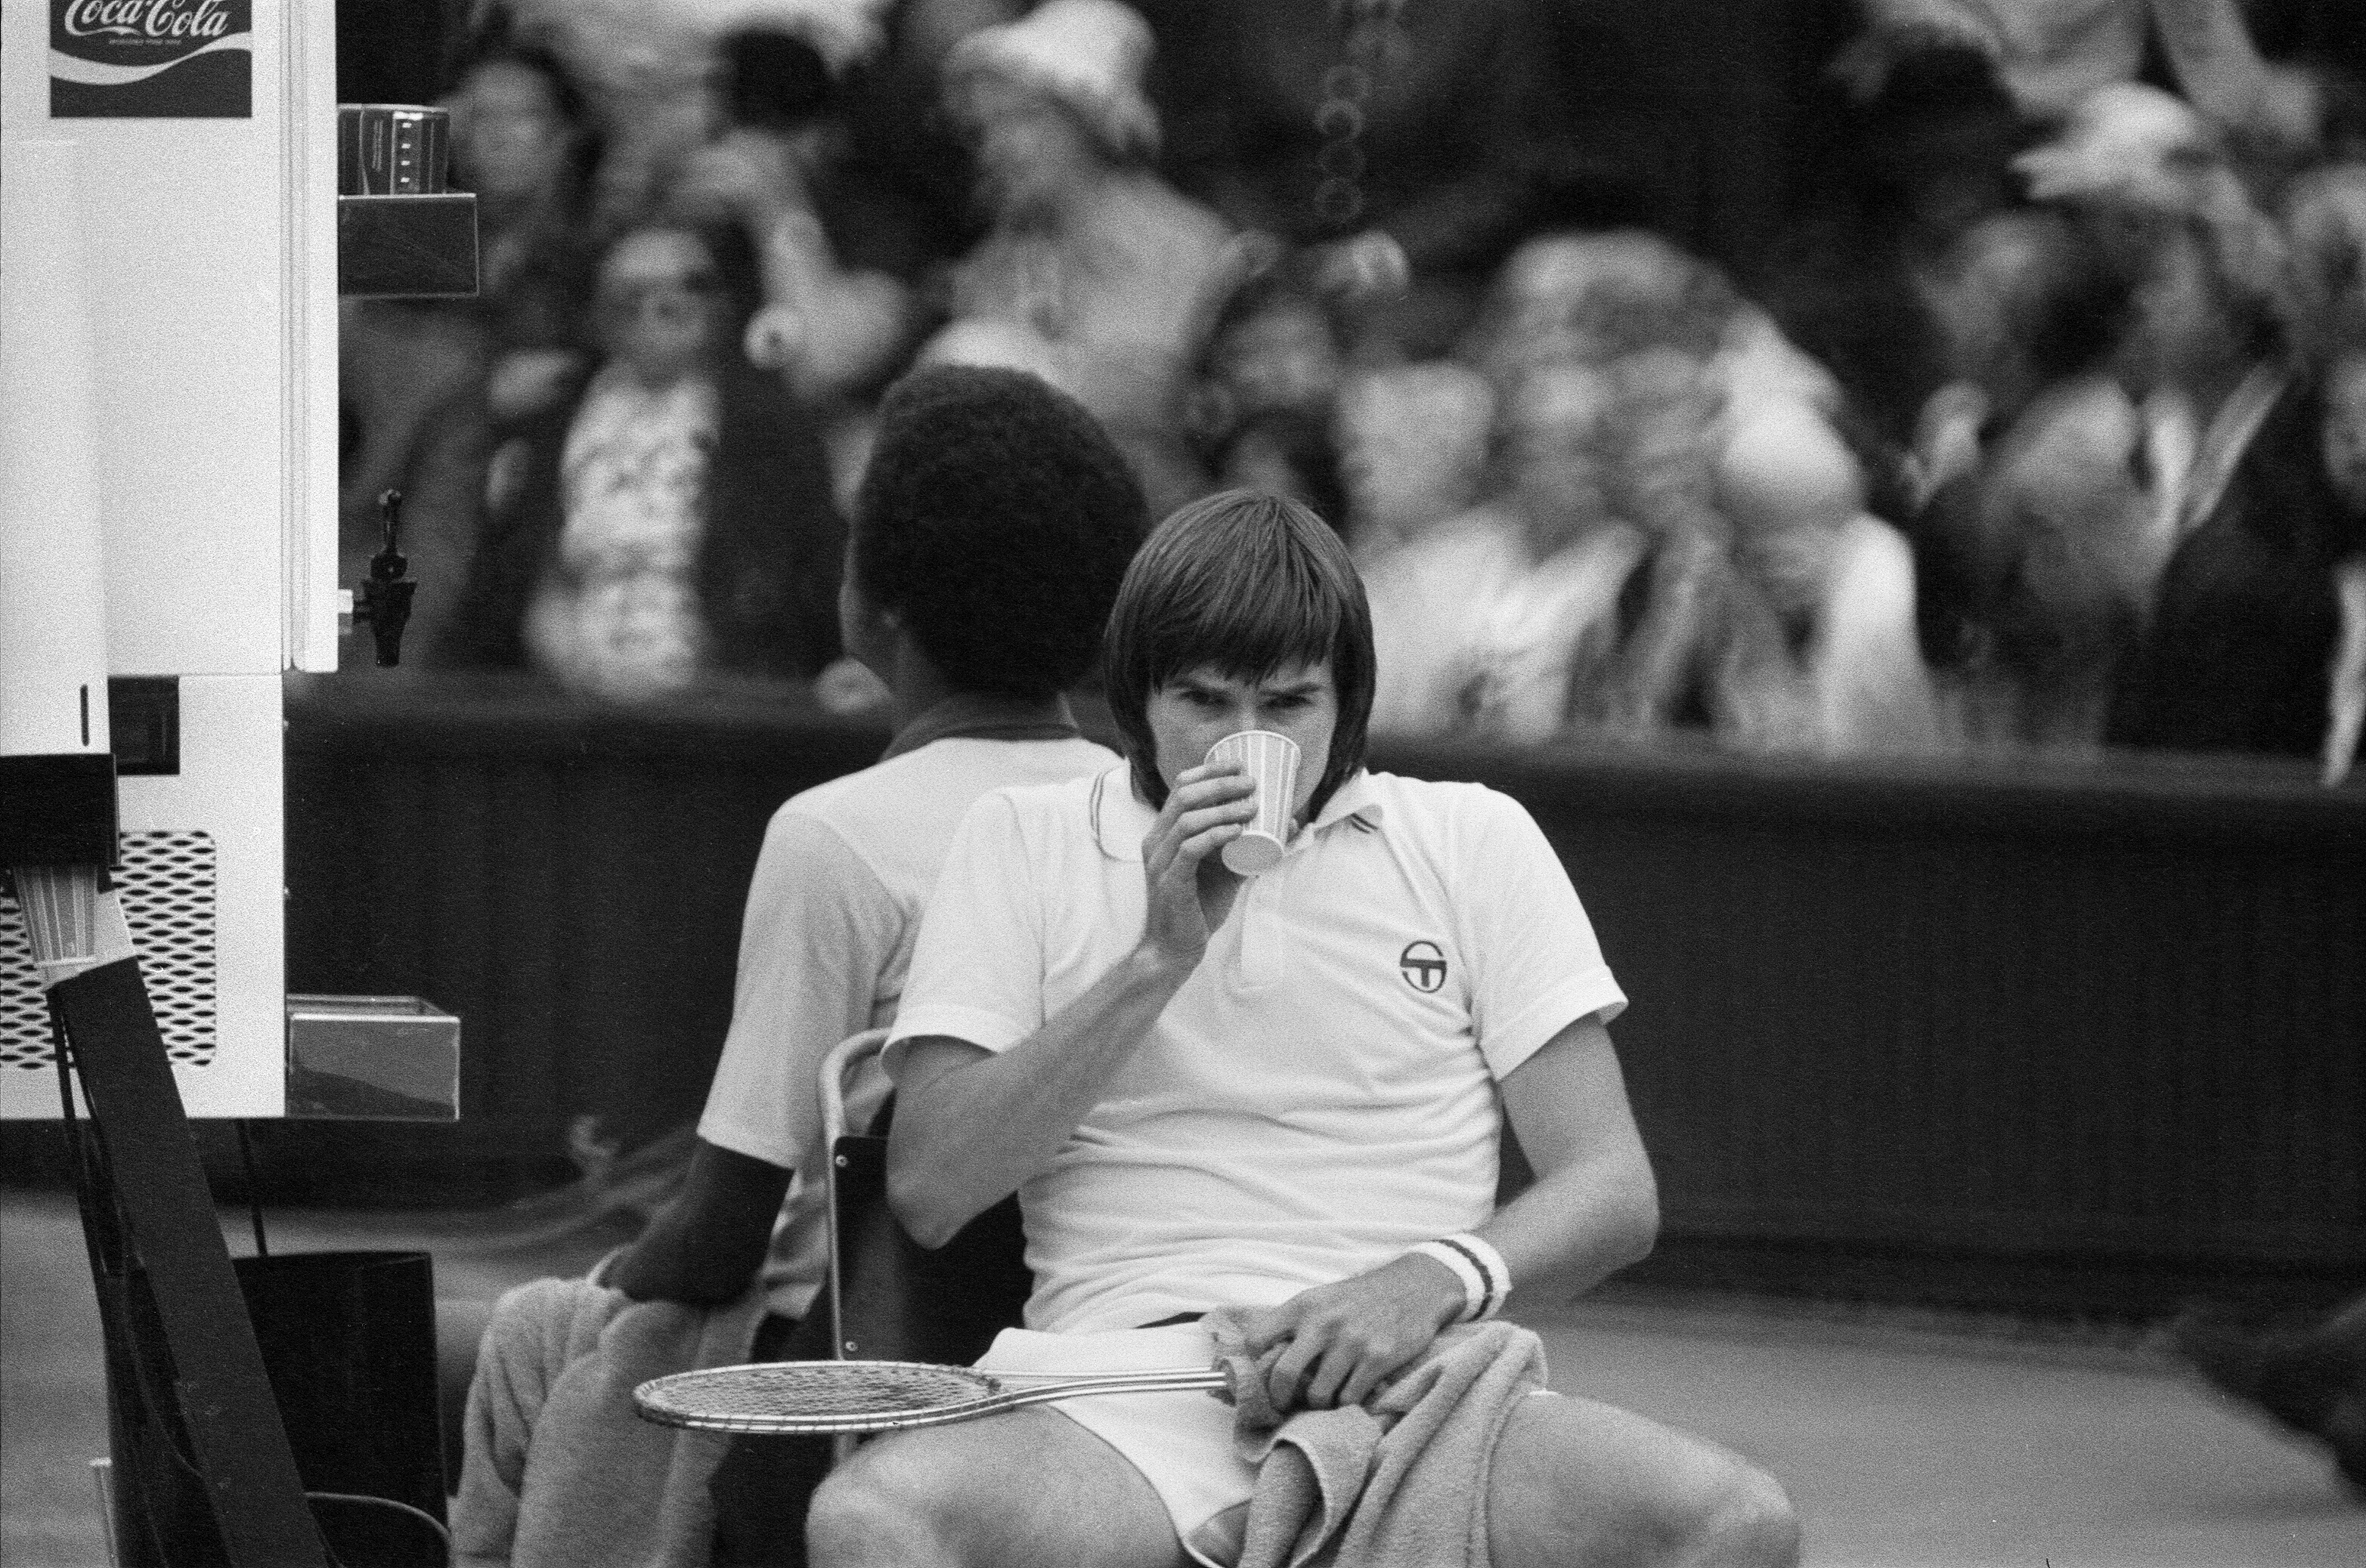 Jimmy Connors and Arthur Ashe in 1975